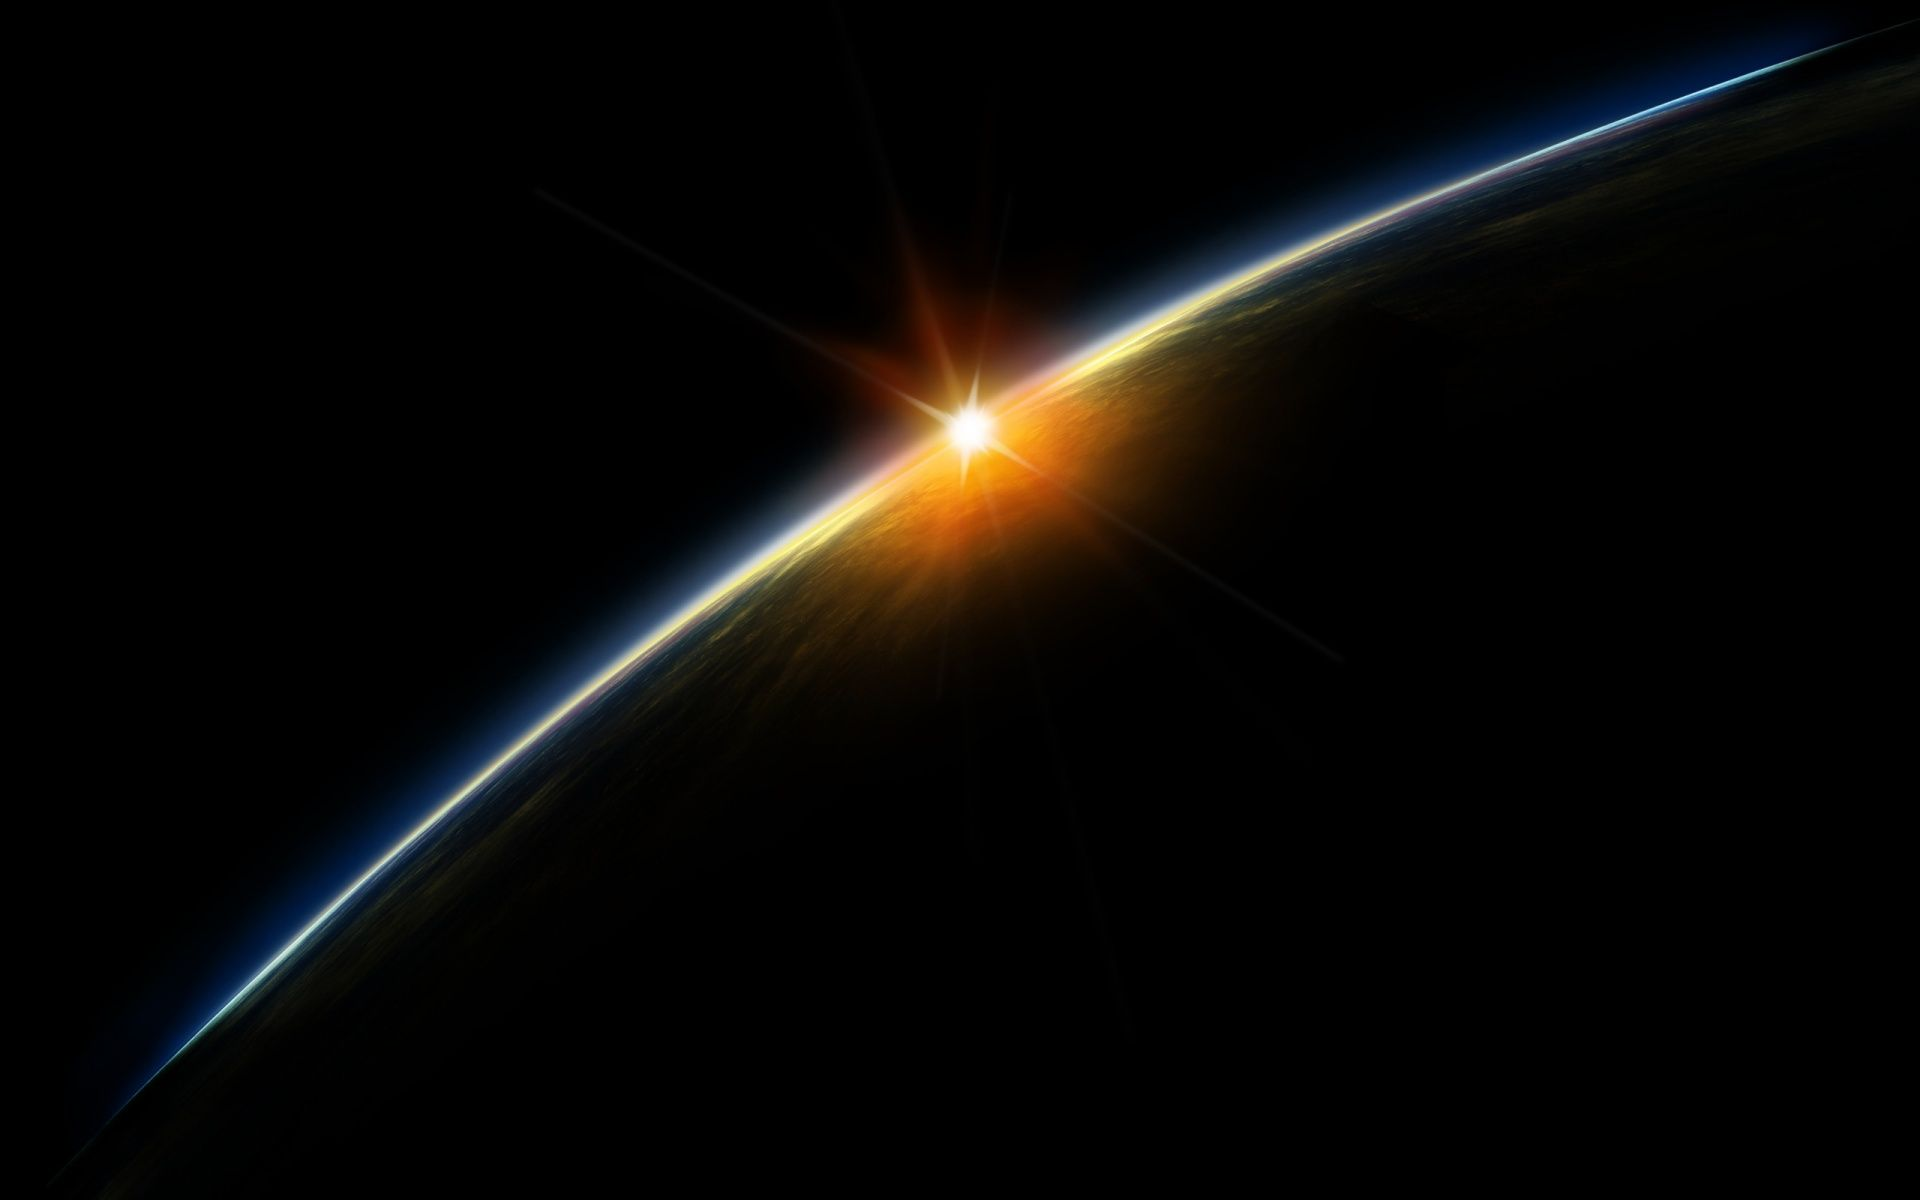 Planet Earth From Space Wallpaper Widescreen